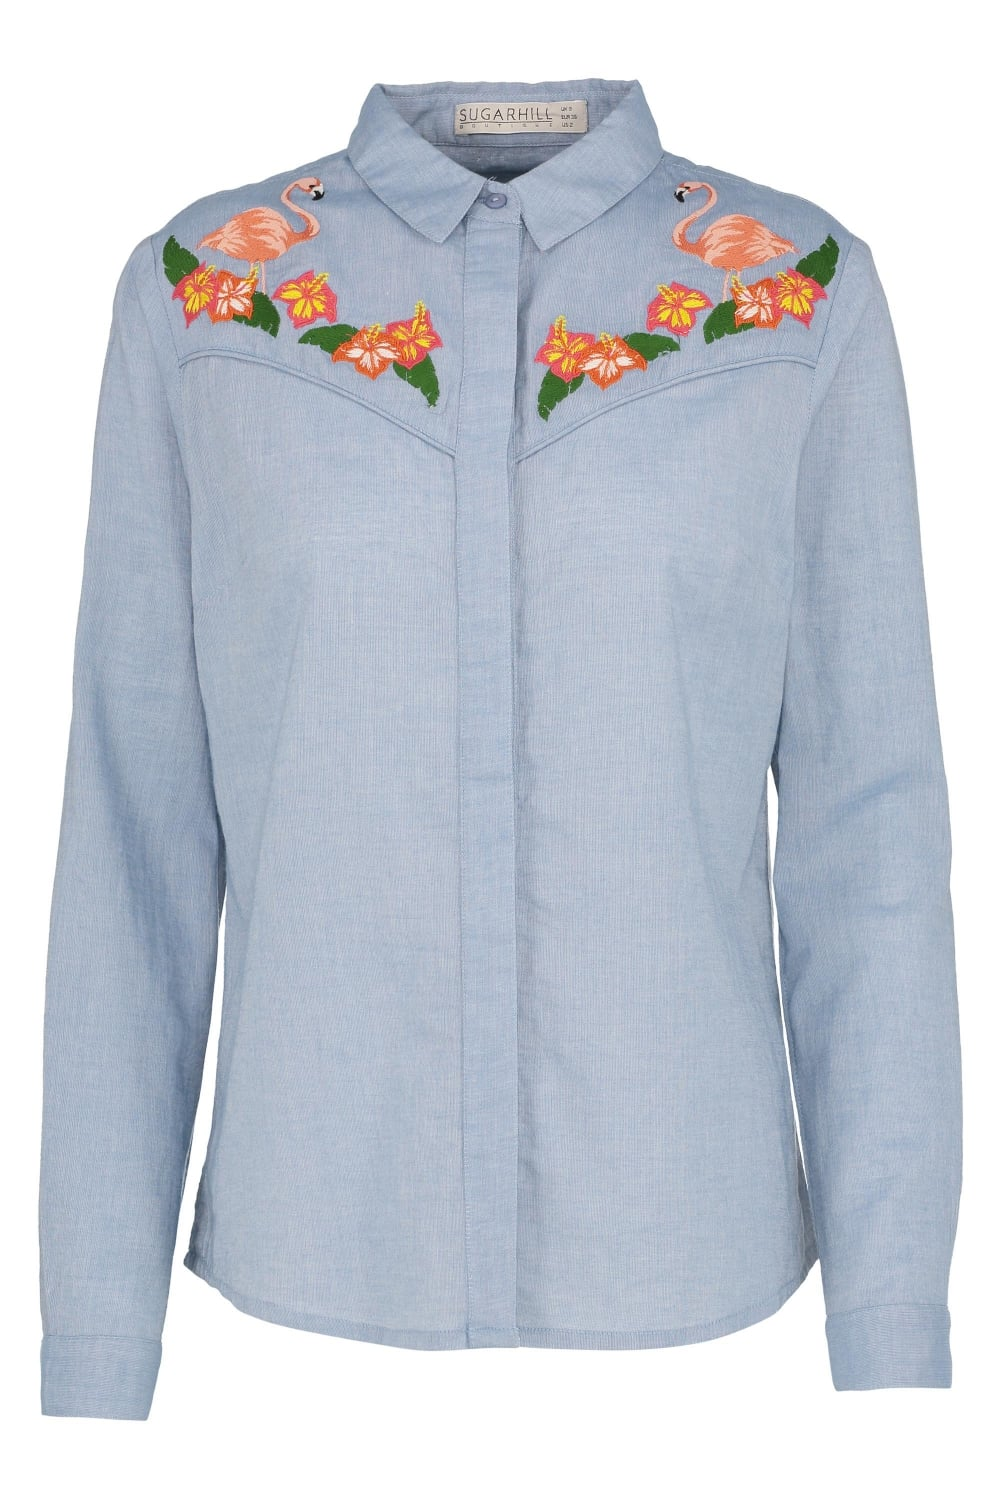 Tropical Flamingo Embroidered Cowboy Shirt4